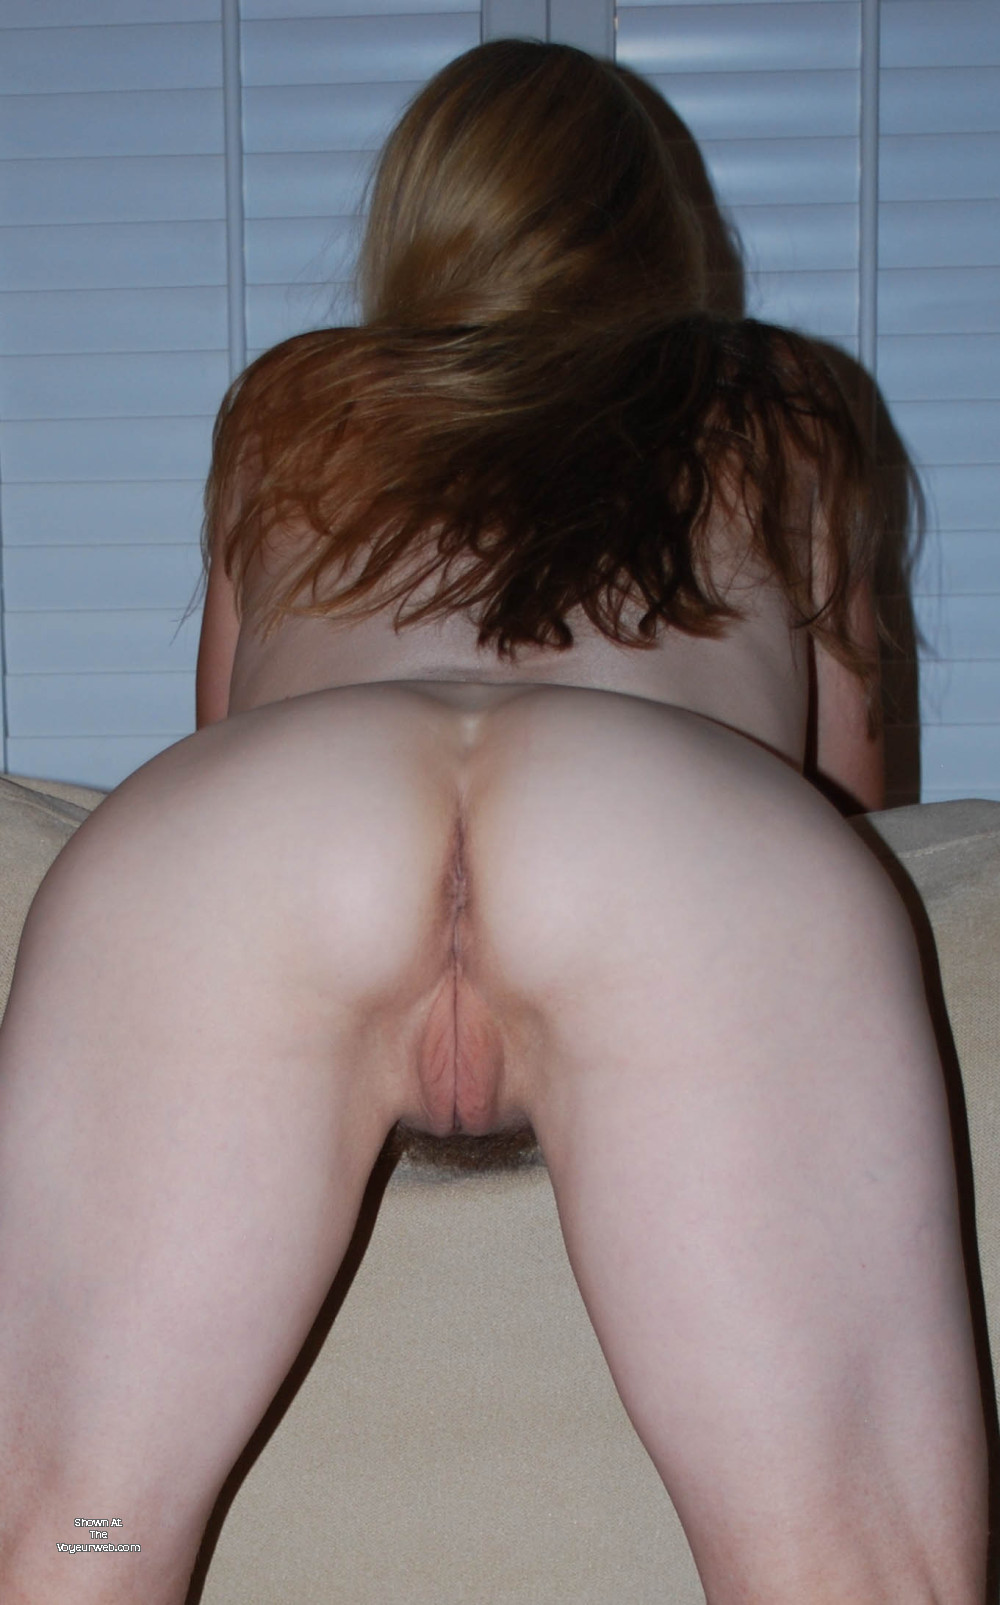 Pic #1 My girlfriend's ass - Midwestern Girl